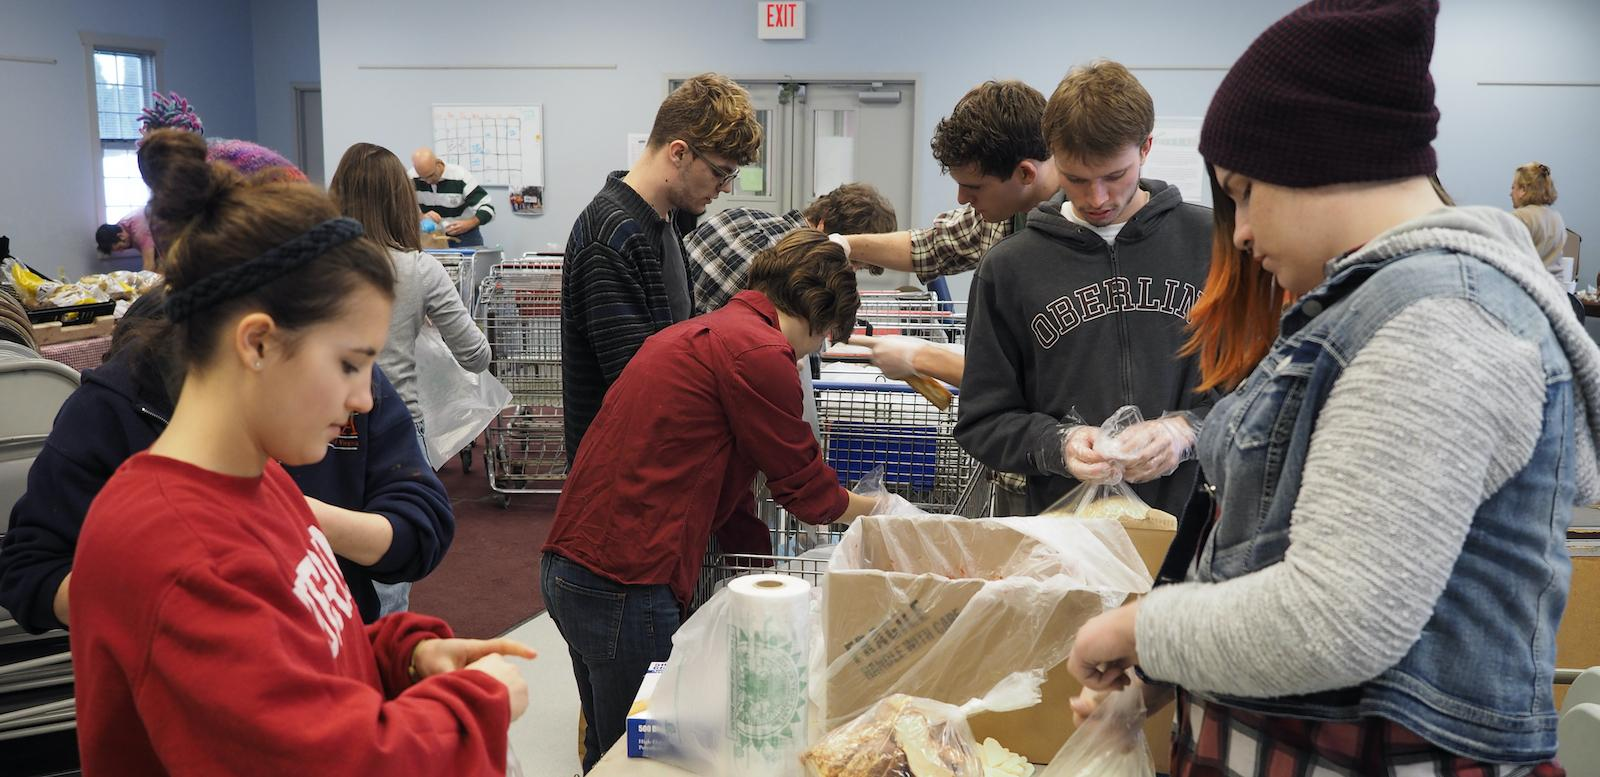 Students organizing food into boxes as part of MLK Day of Service